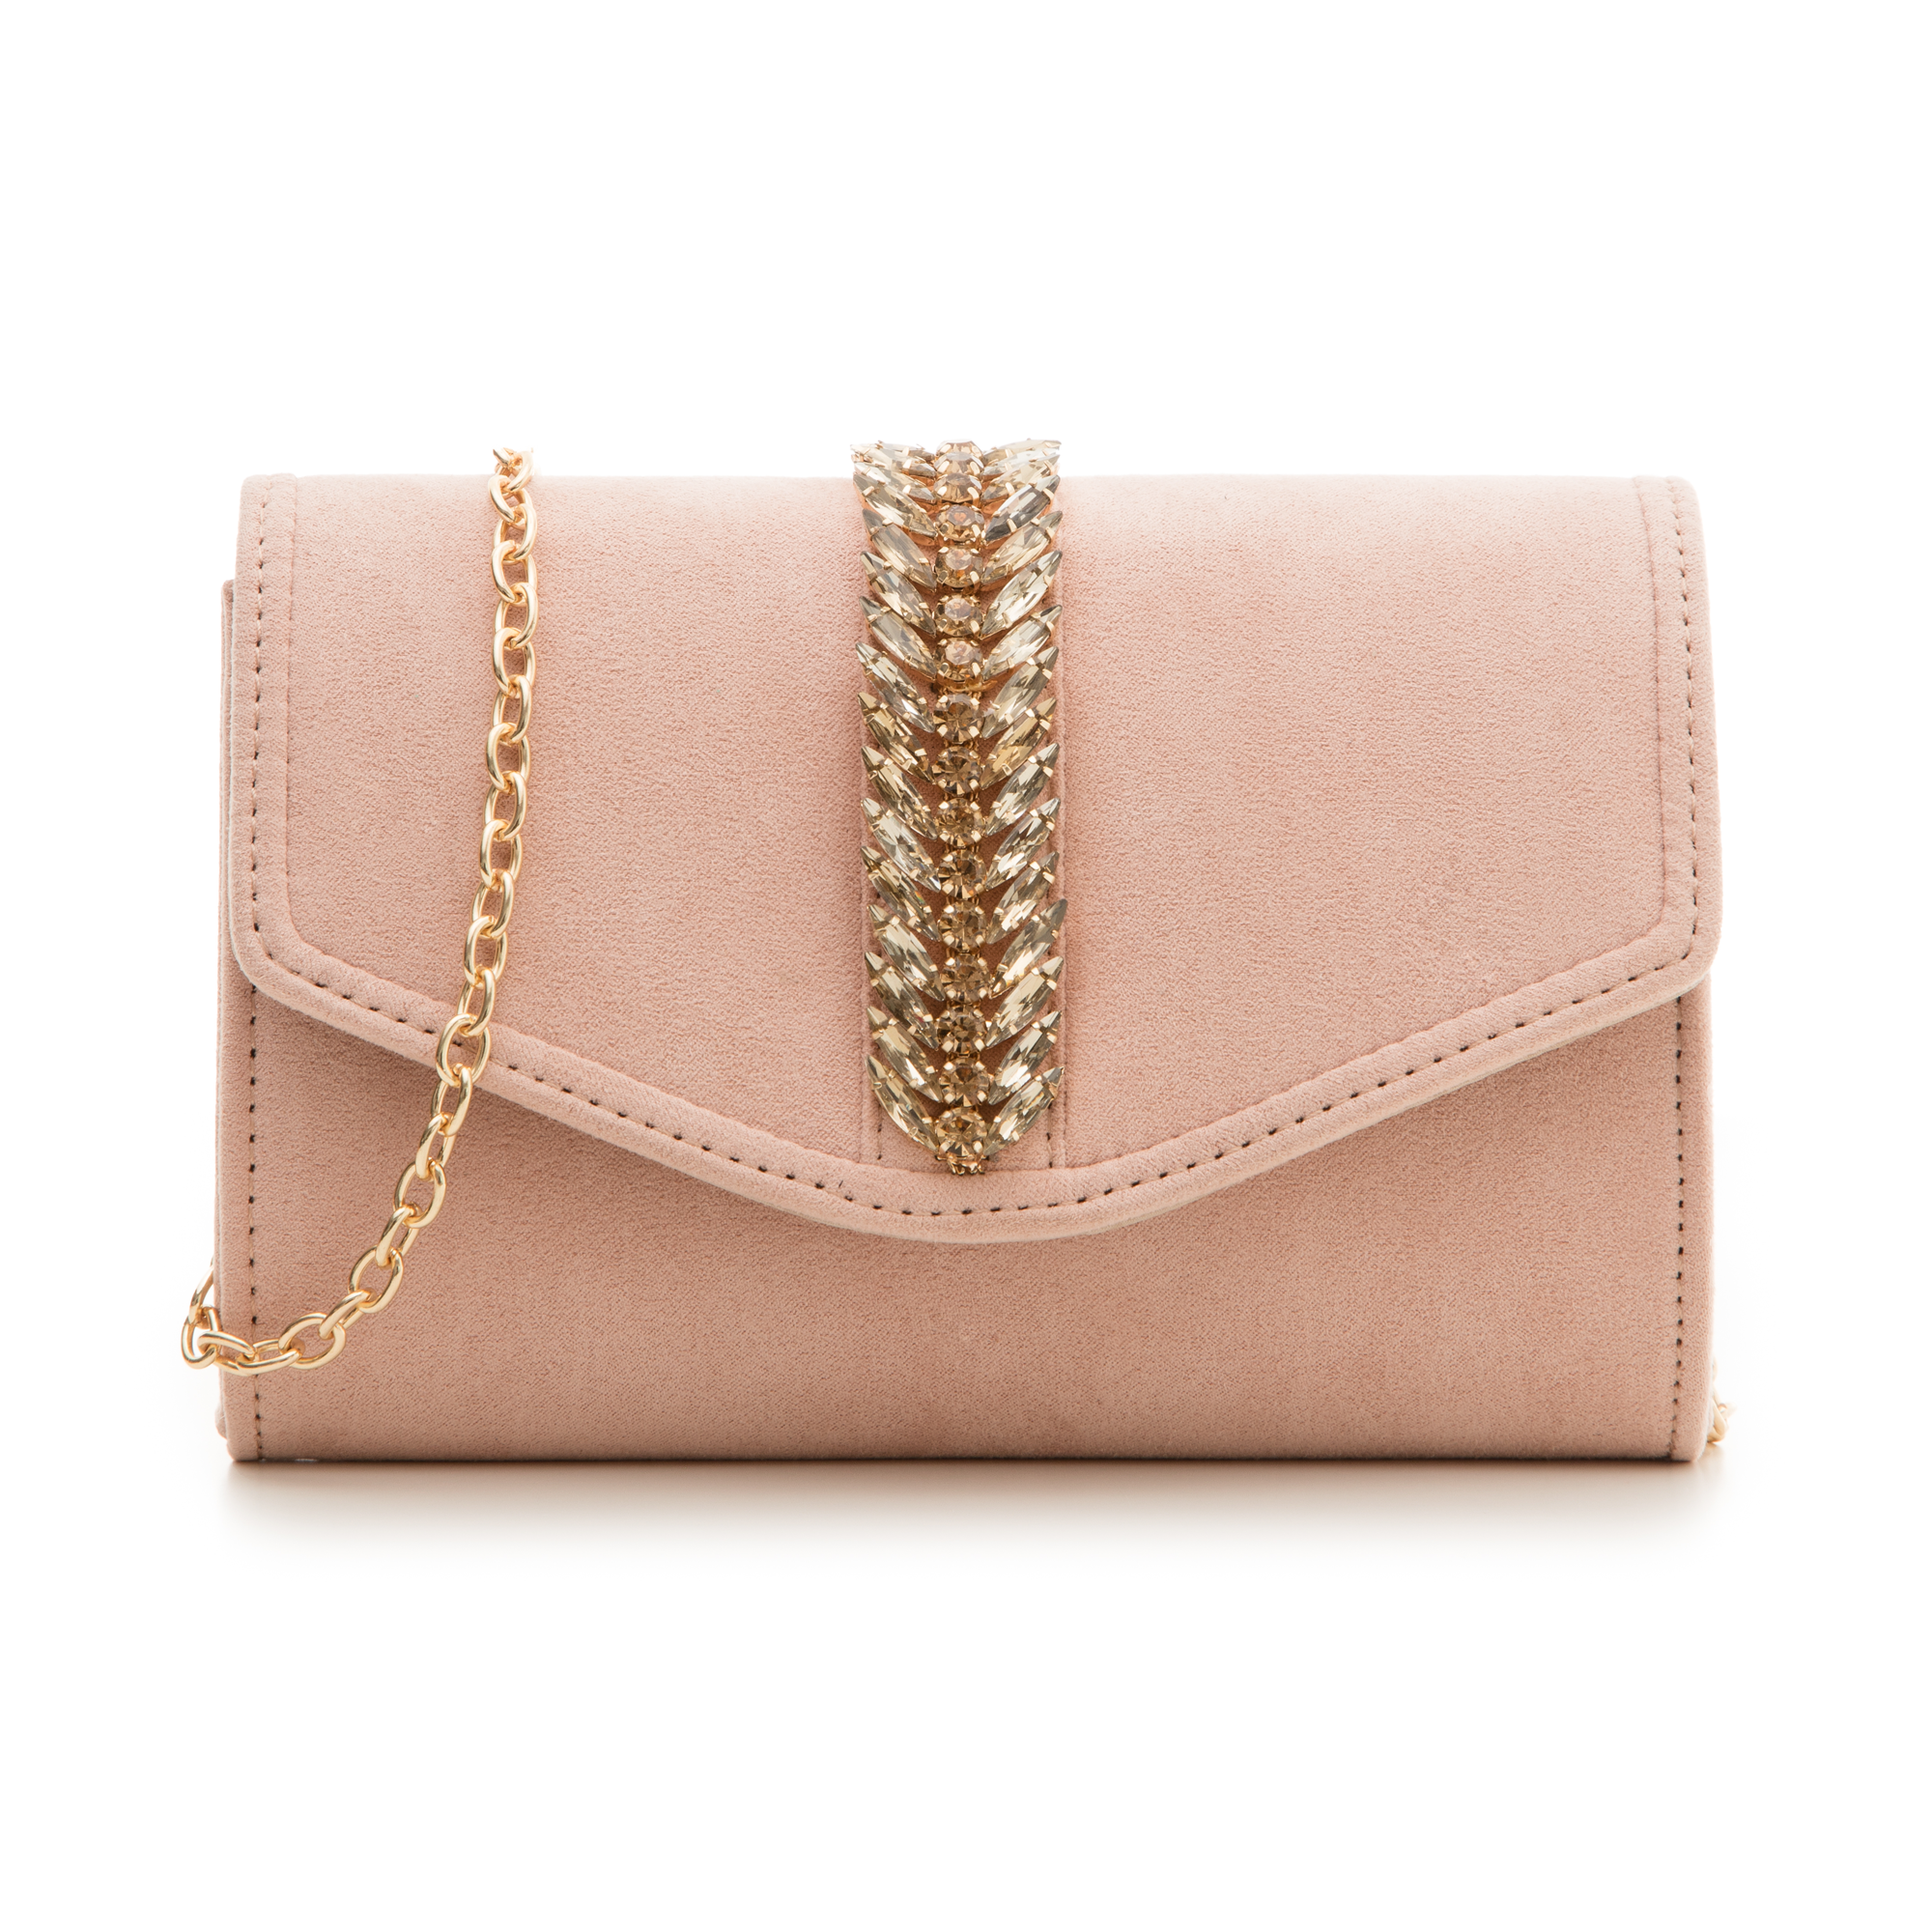 8a1da79430 Pochette Donna - Online Shop | Primadonna Collection